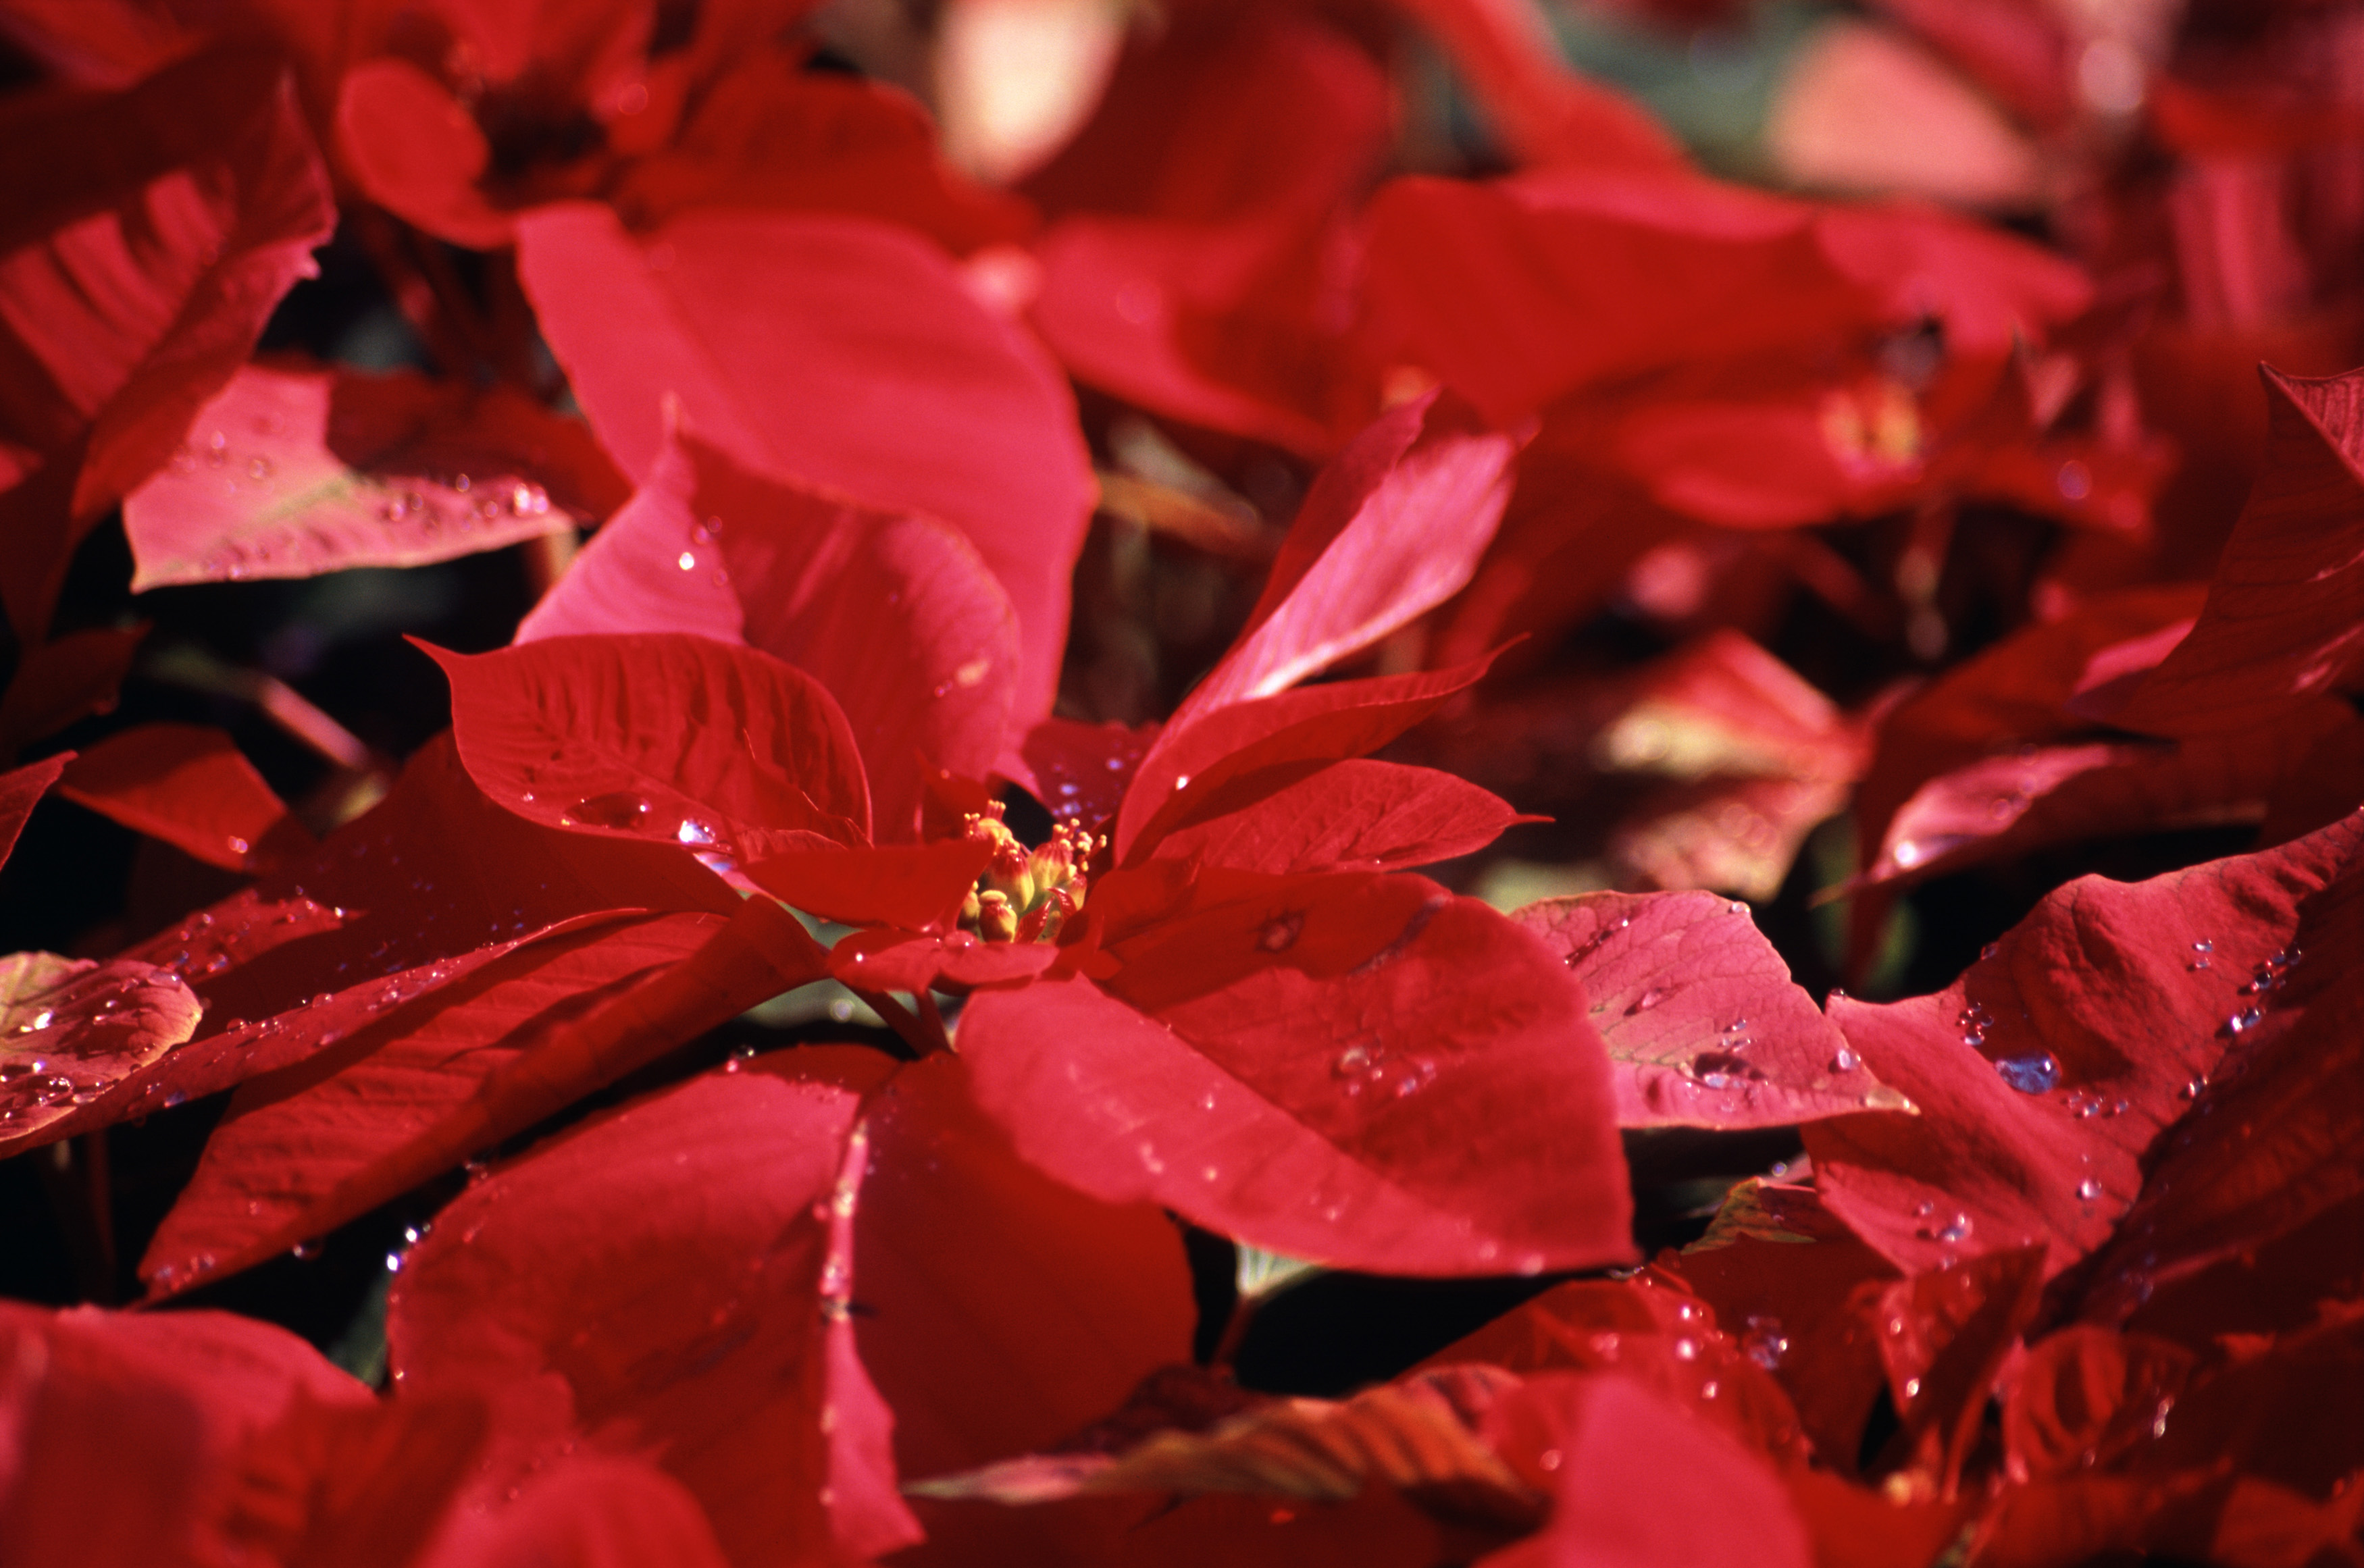 free image of colorful christmas background of red poinsettias